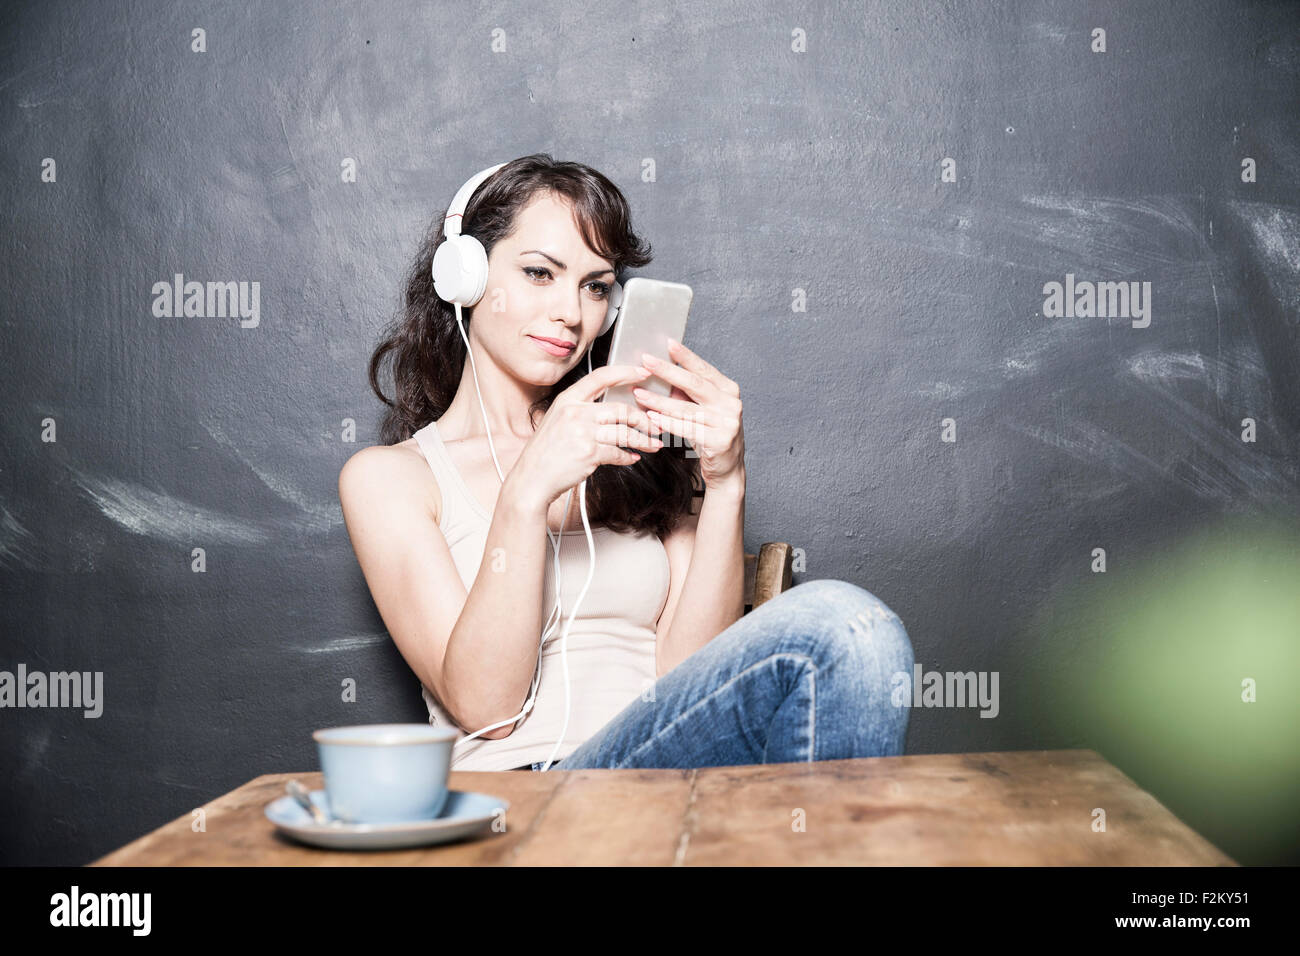 Dark haired businesswoman sitting at table, wearing headphones, using smart phone - Stock Image